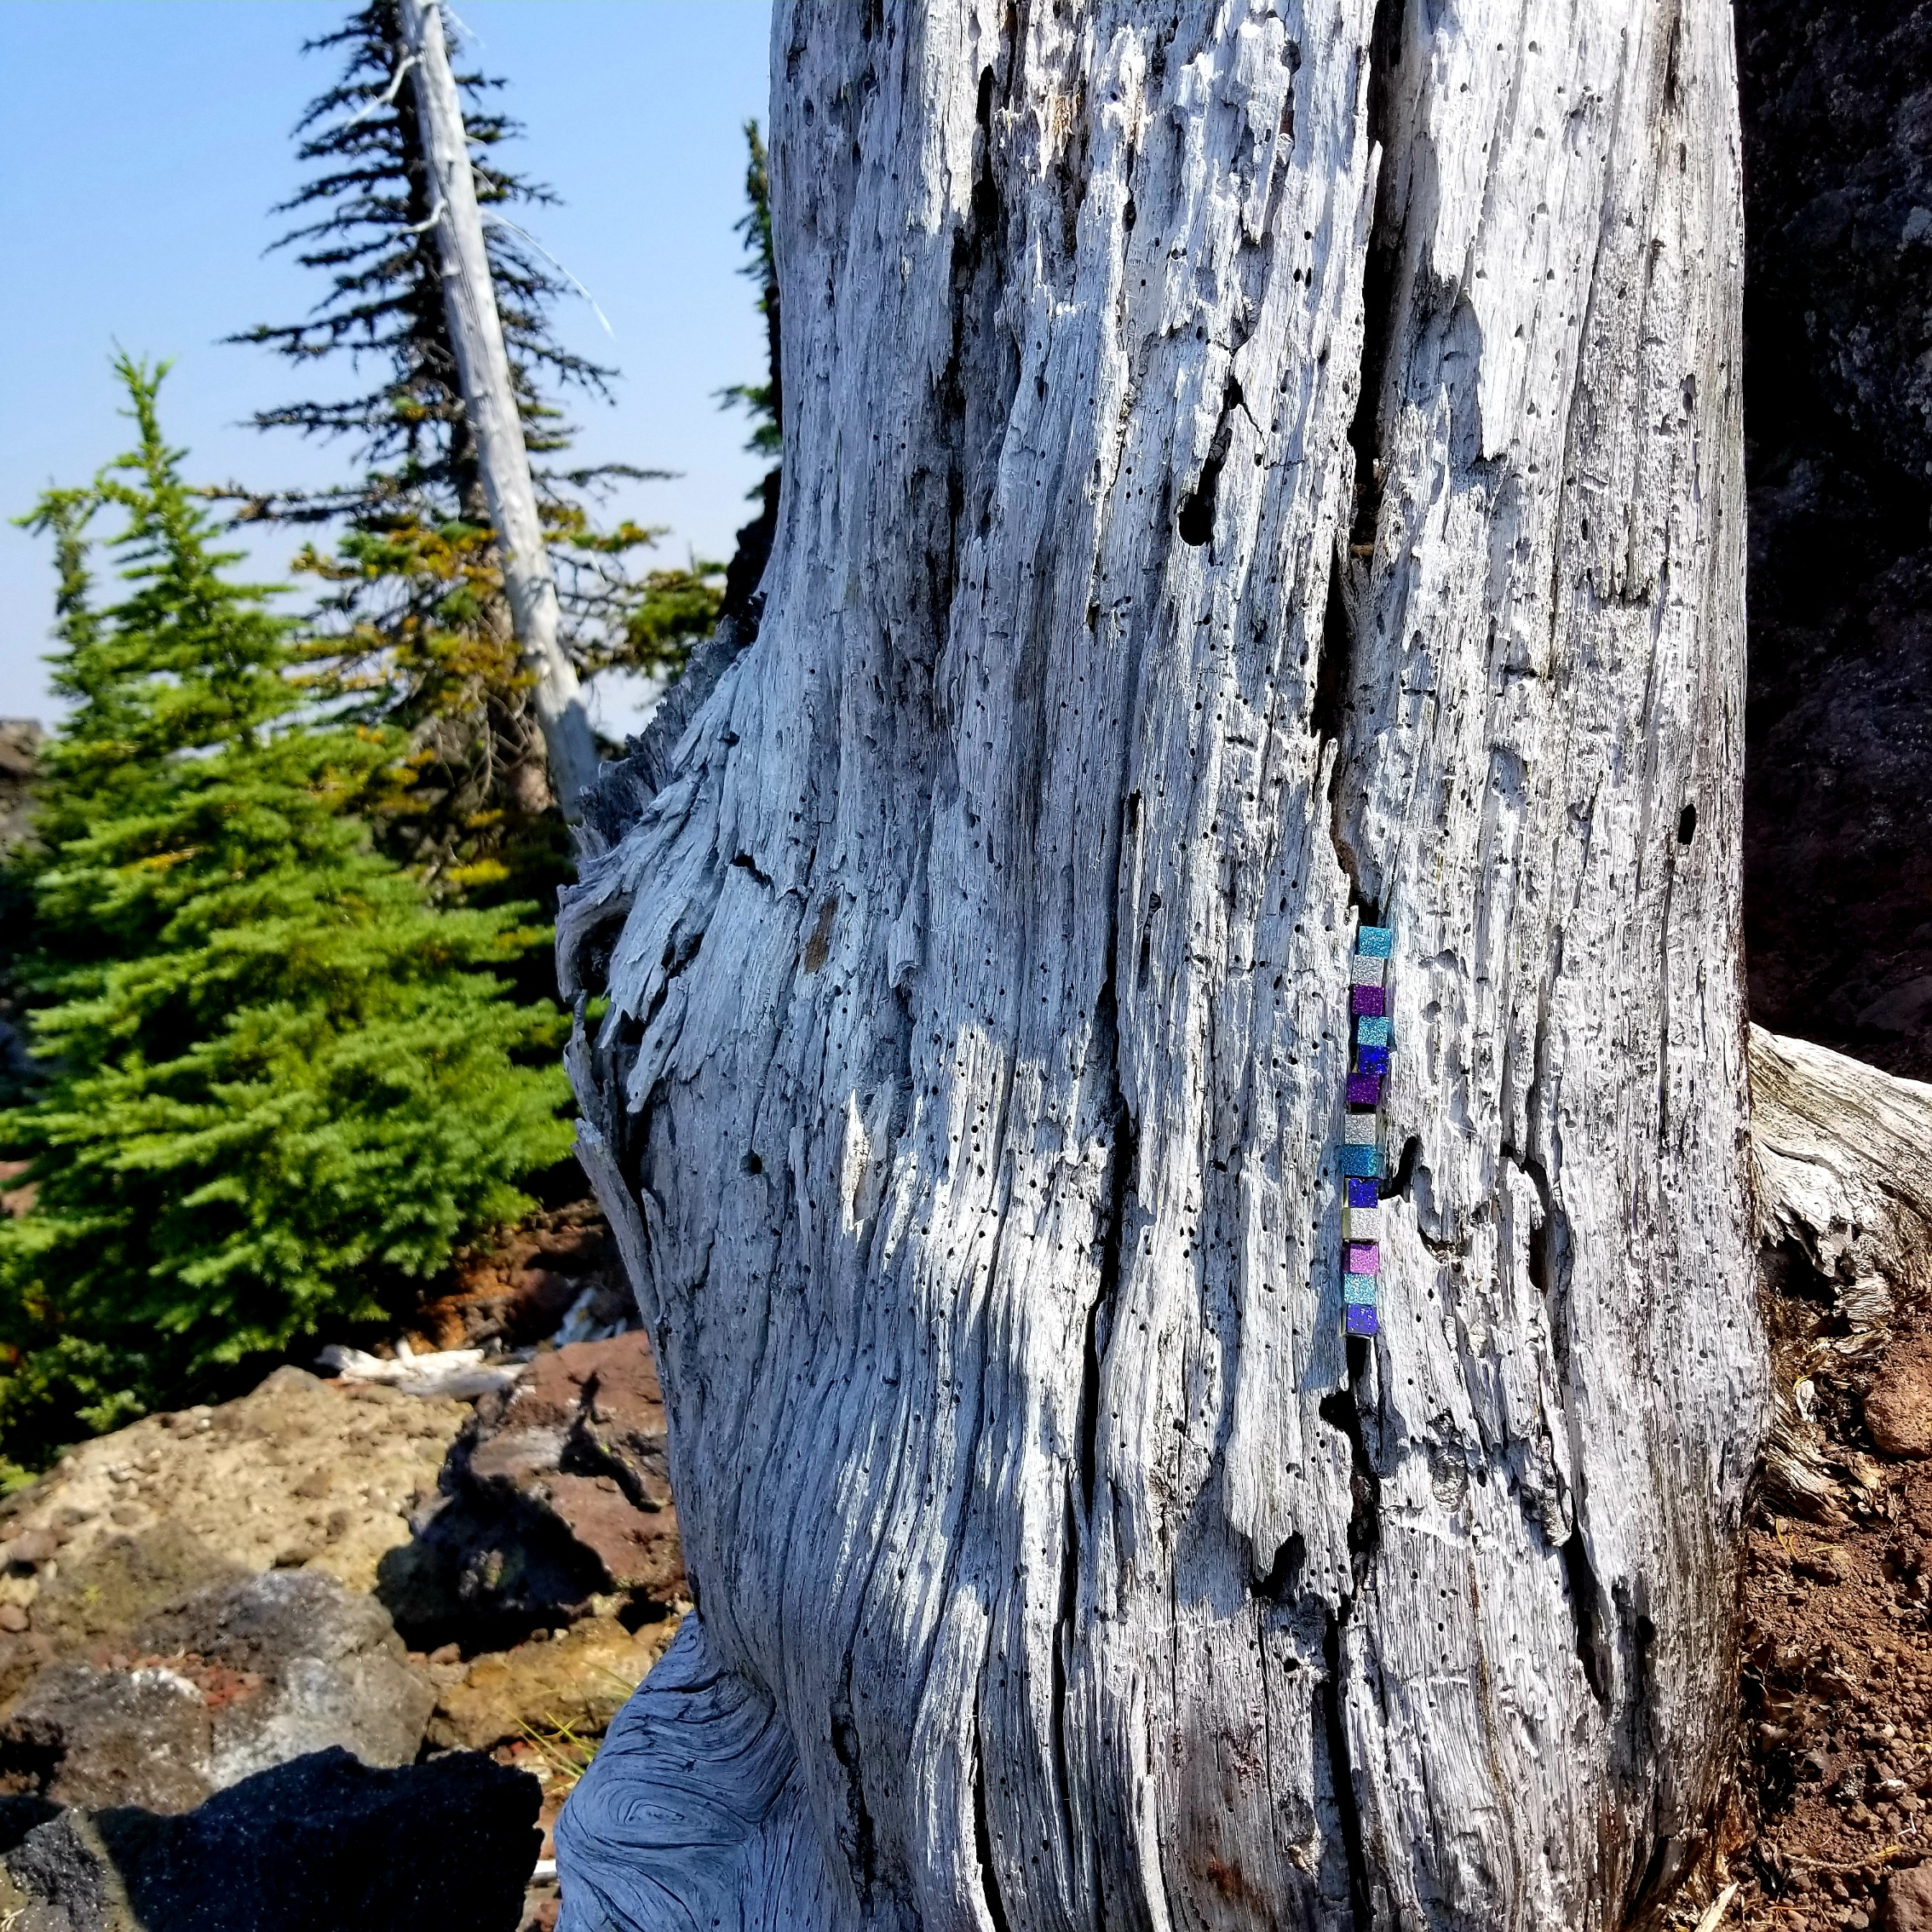 Glitter infused resin cubes installed in a Lodgepole pine setting up shop in a lava field on MacKenzie Pass in Oregon, August 2018.